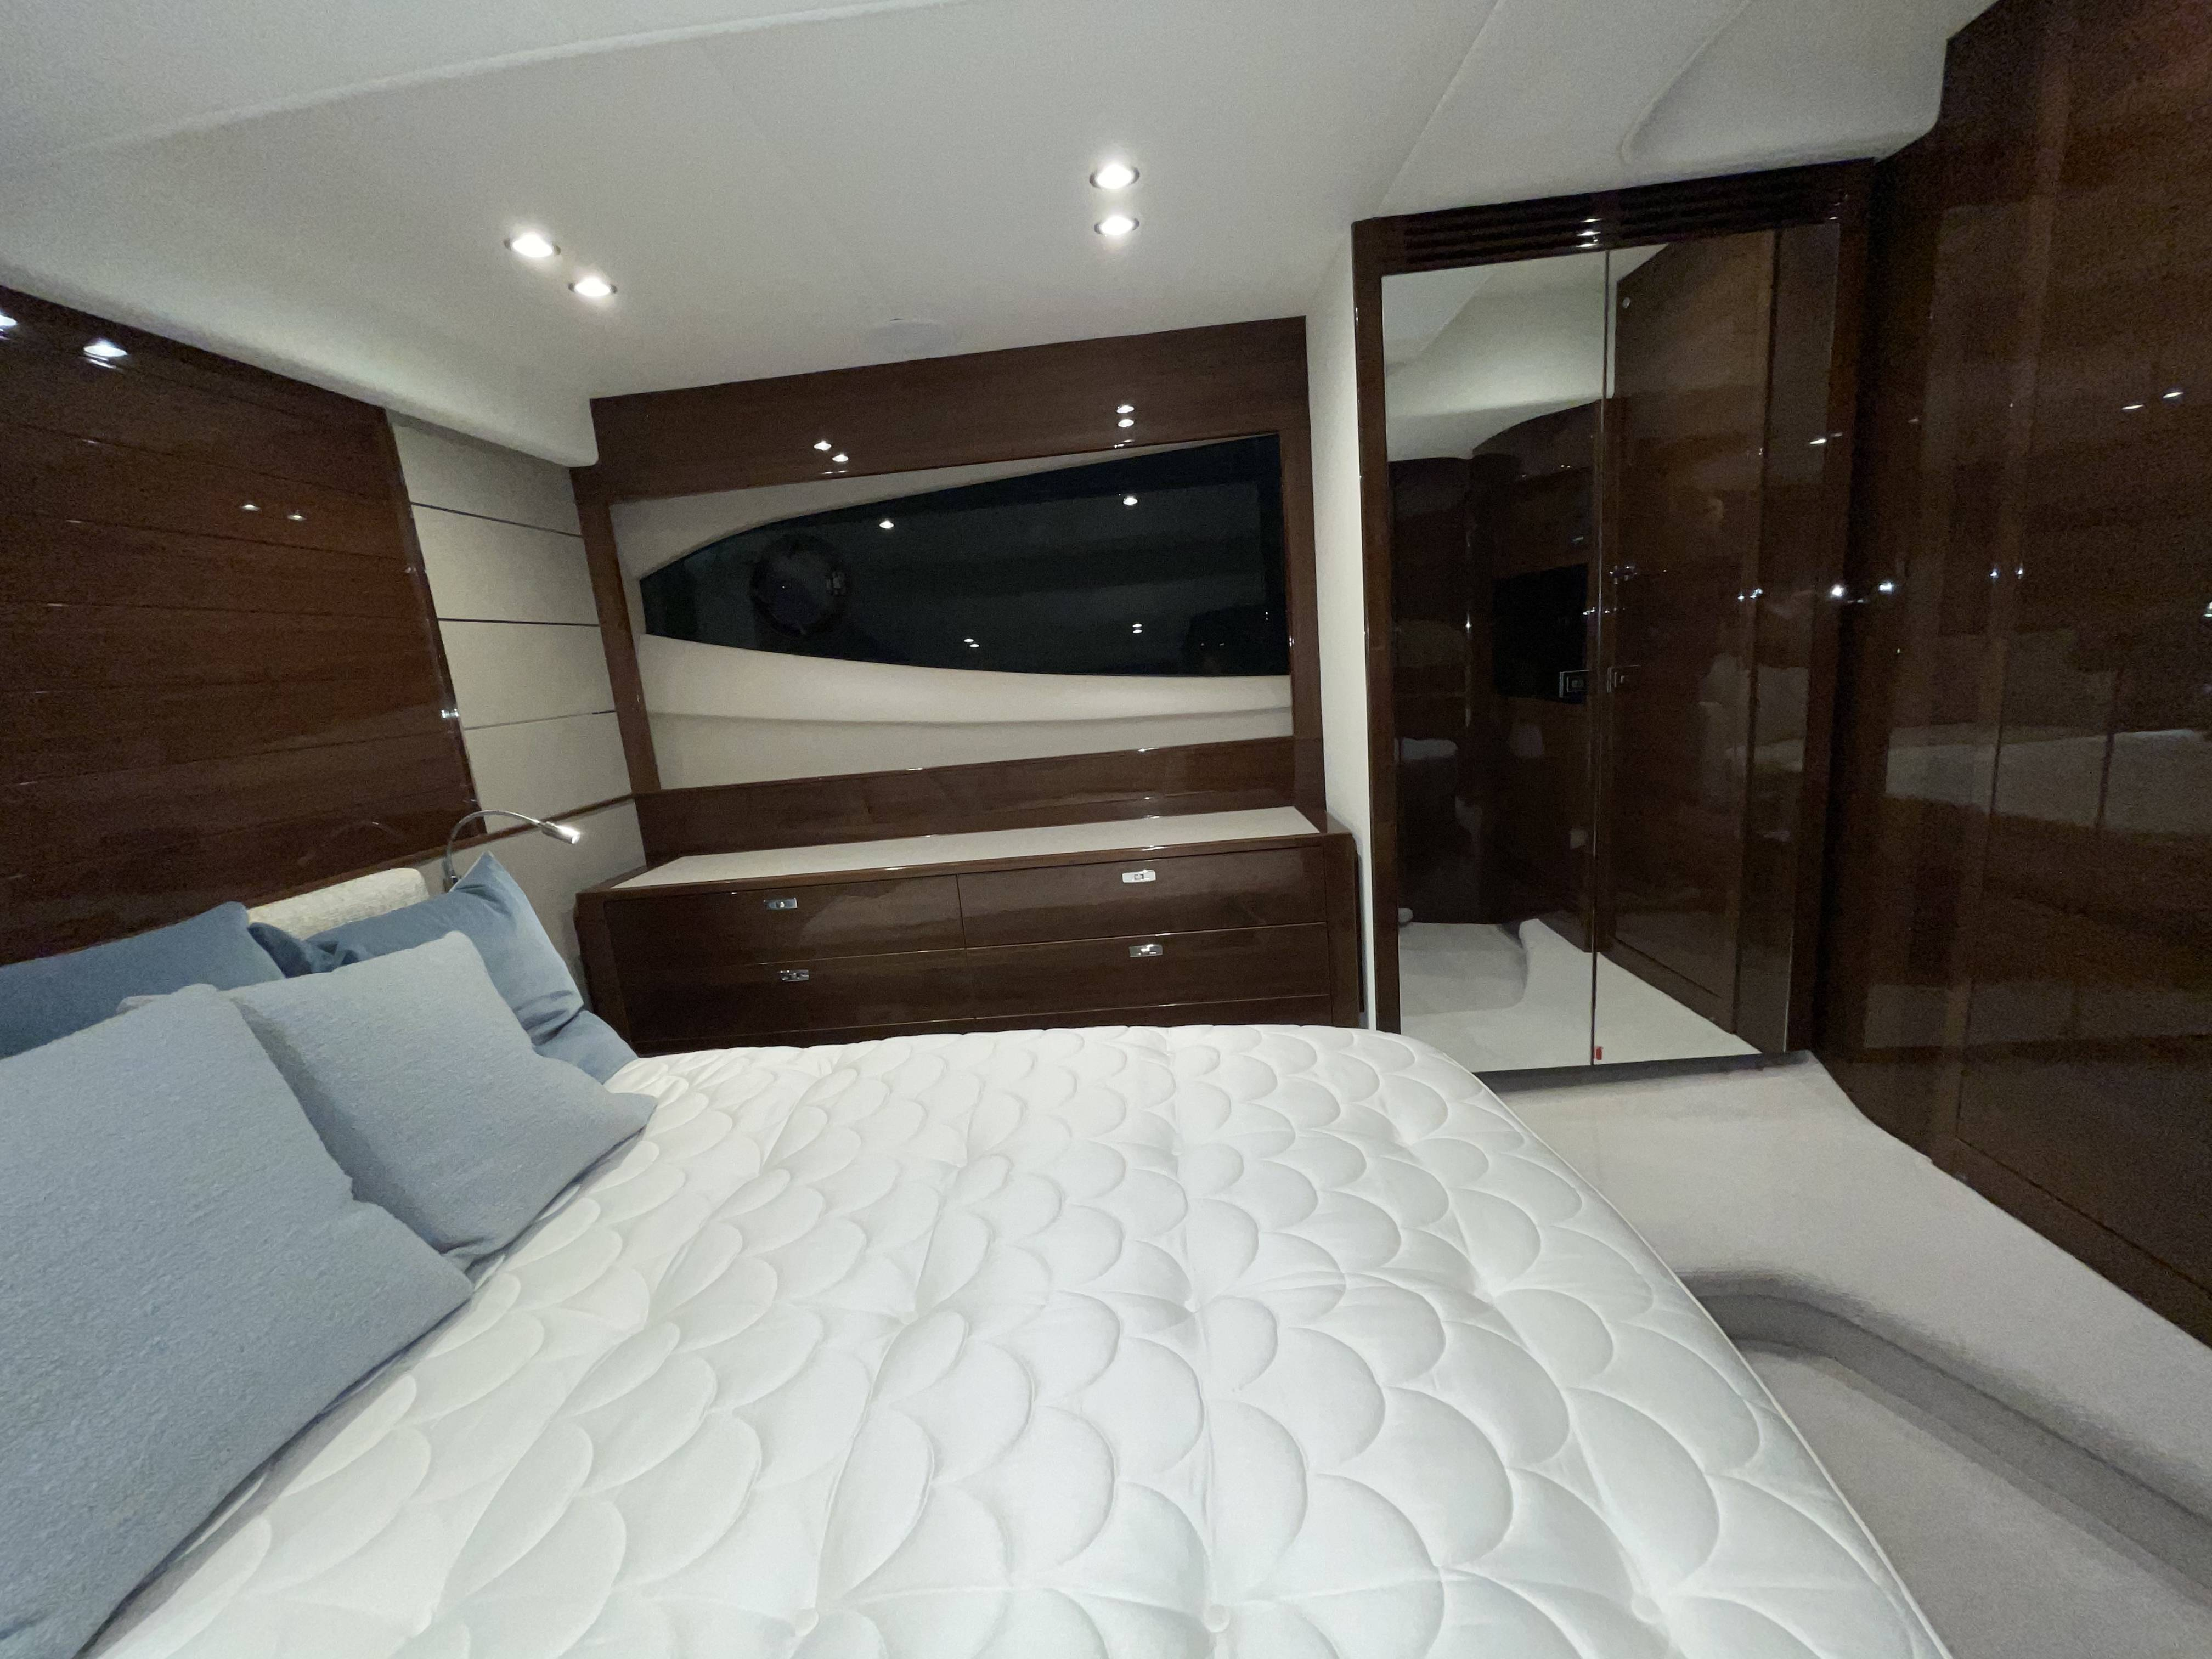 2021 Princess Yachts boat for sale, model of the boat is V50 & Image # 25 of 29